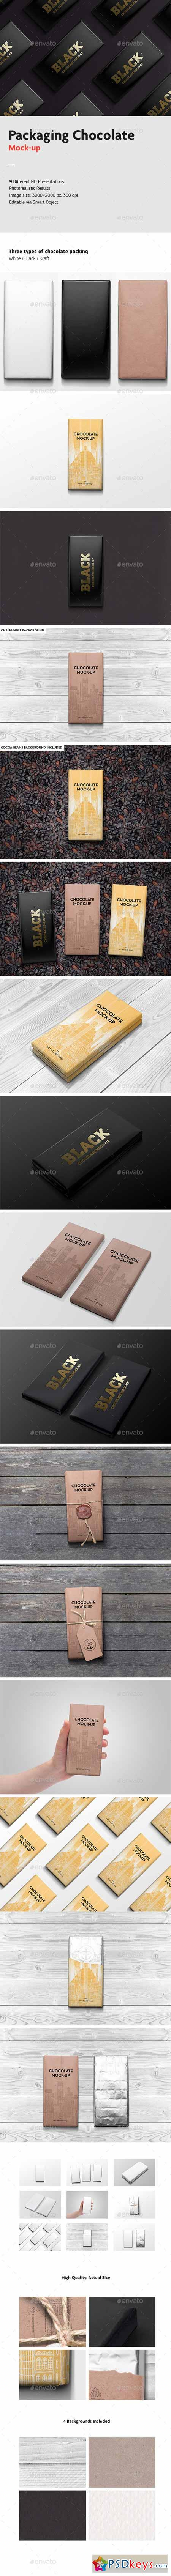 Packaging Chocolate Mock-Up 9693093